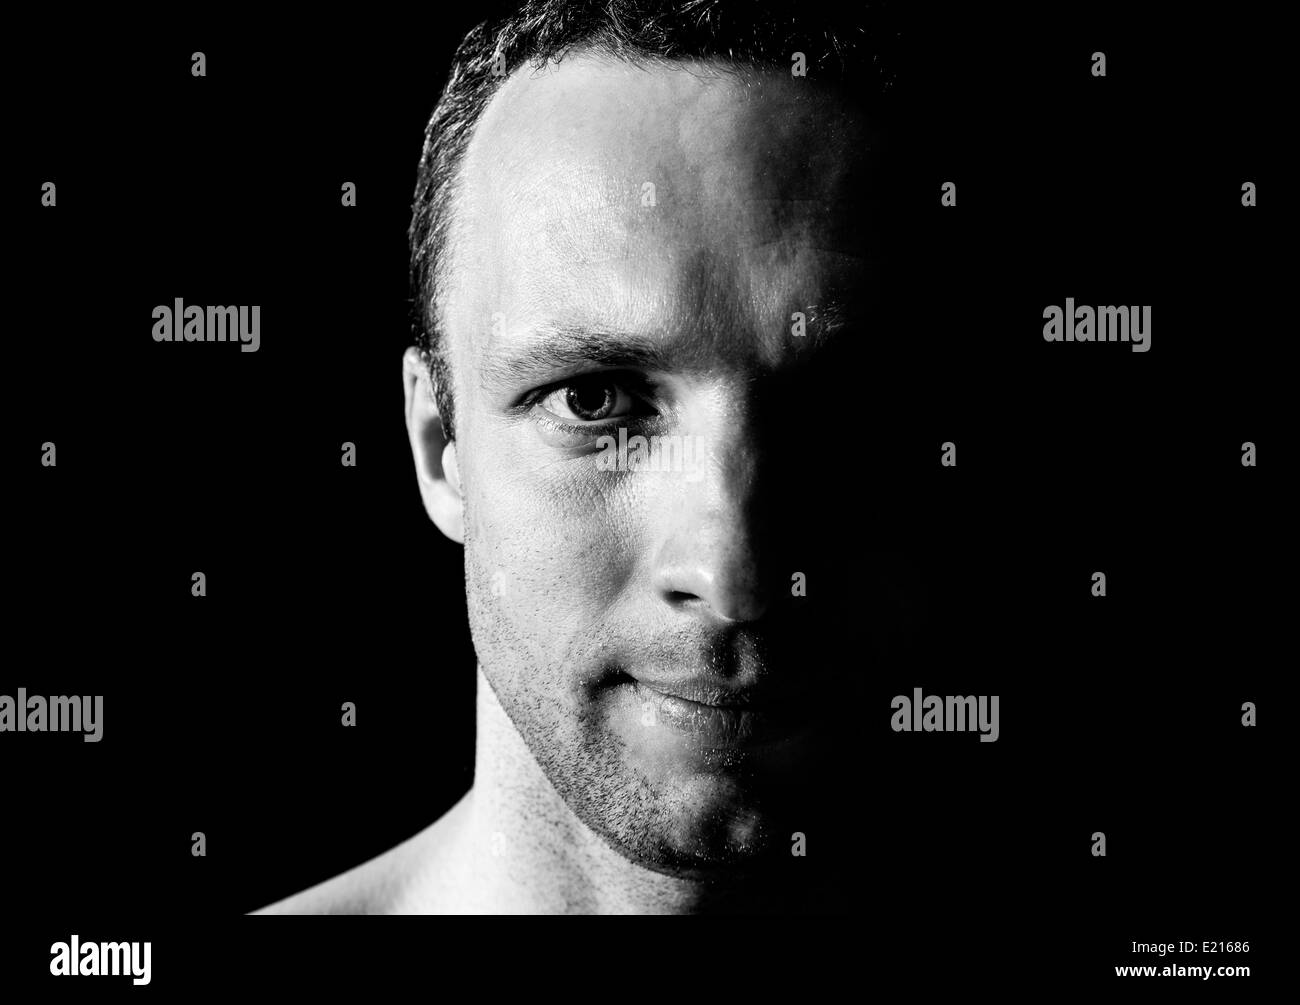 Young smiling Caucasian man closeup portrait on black background - Stock Image